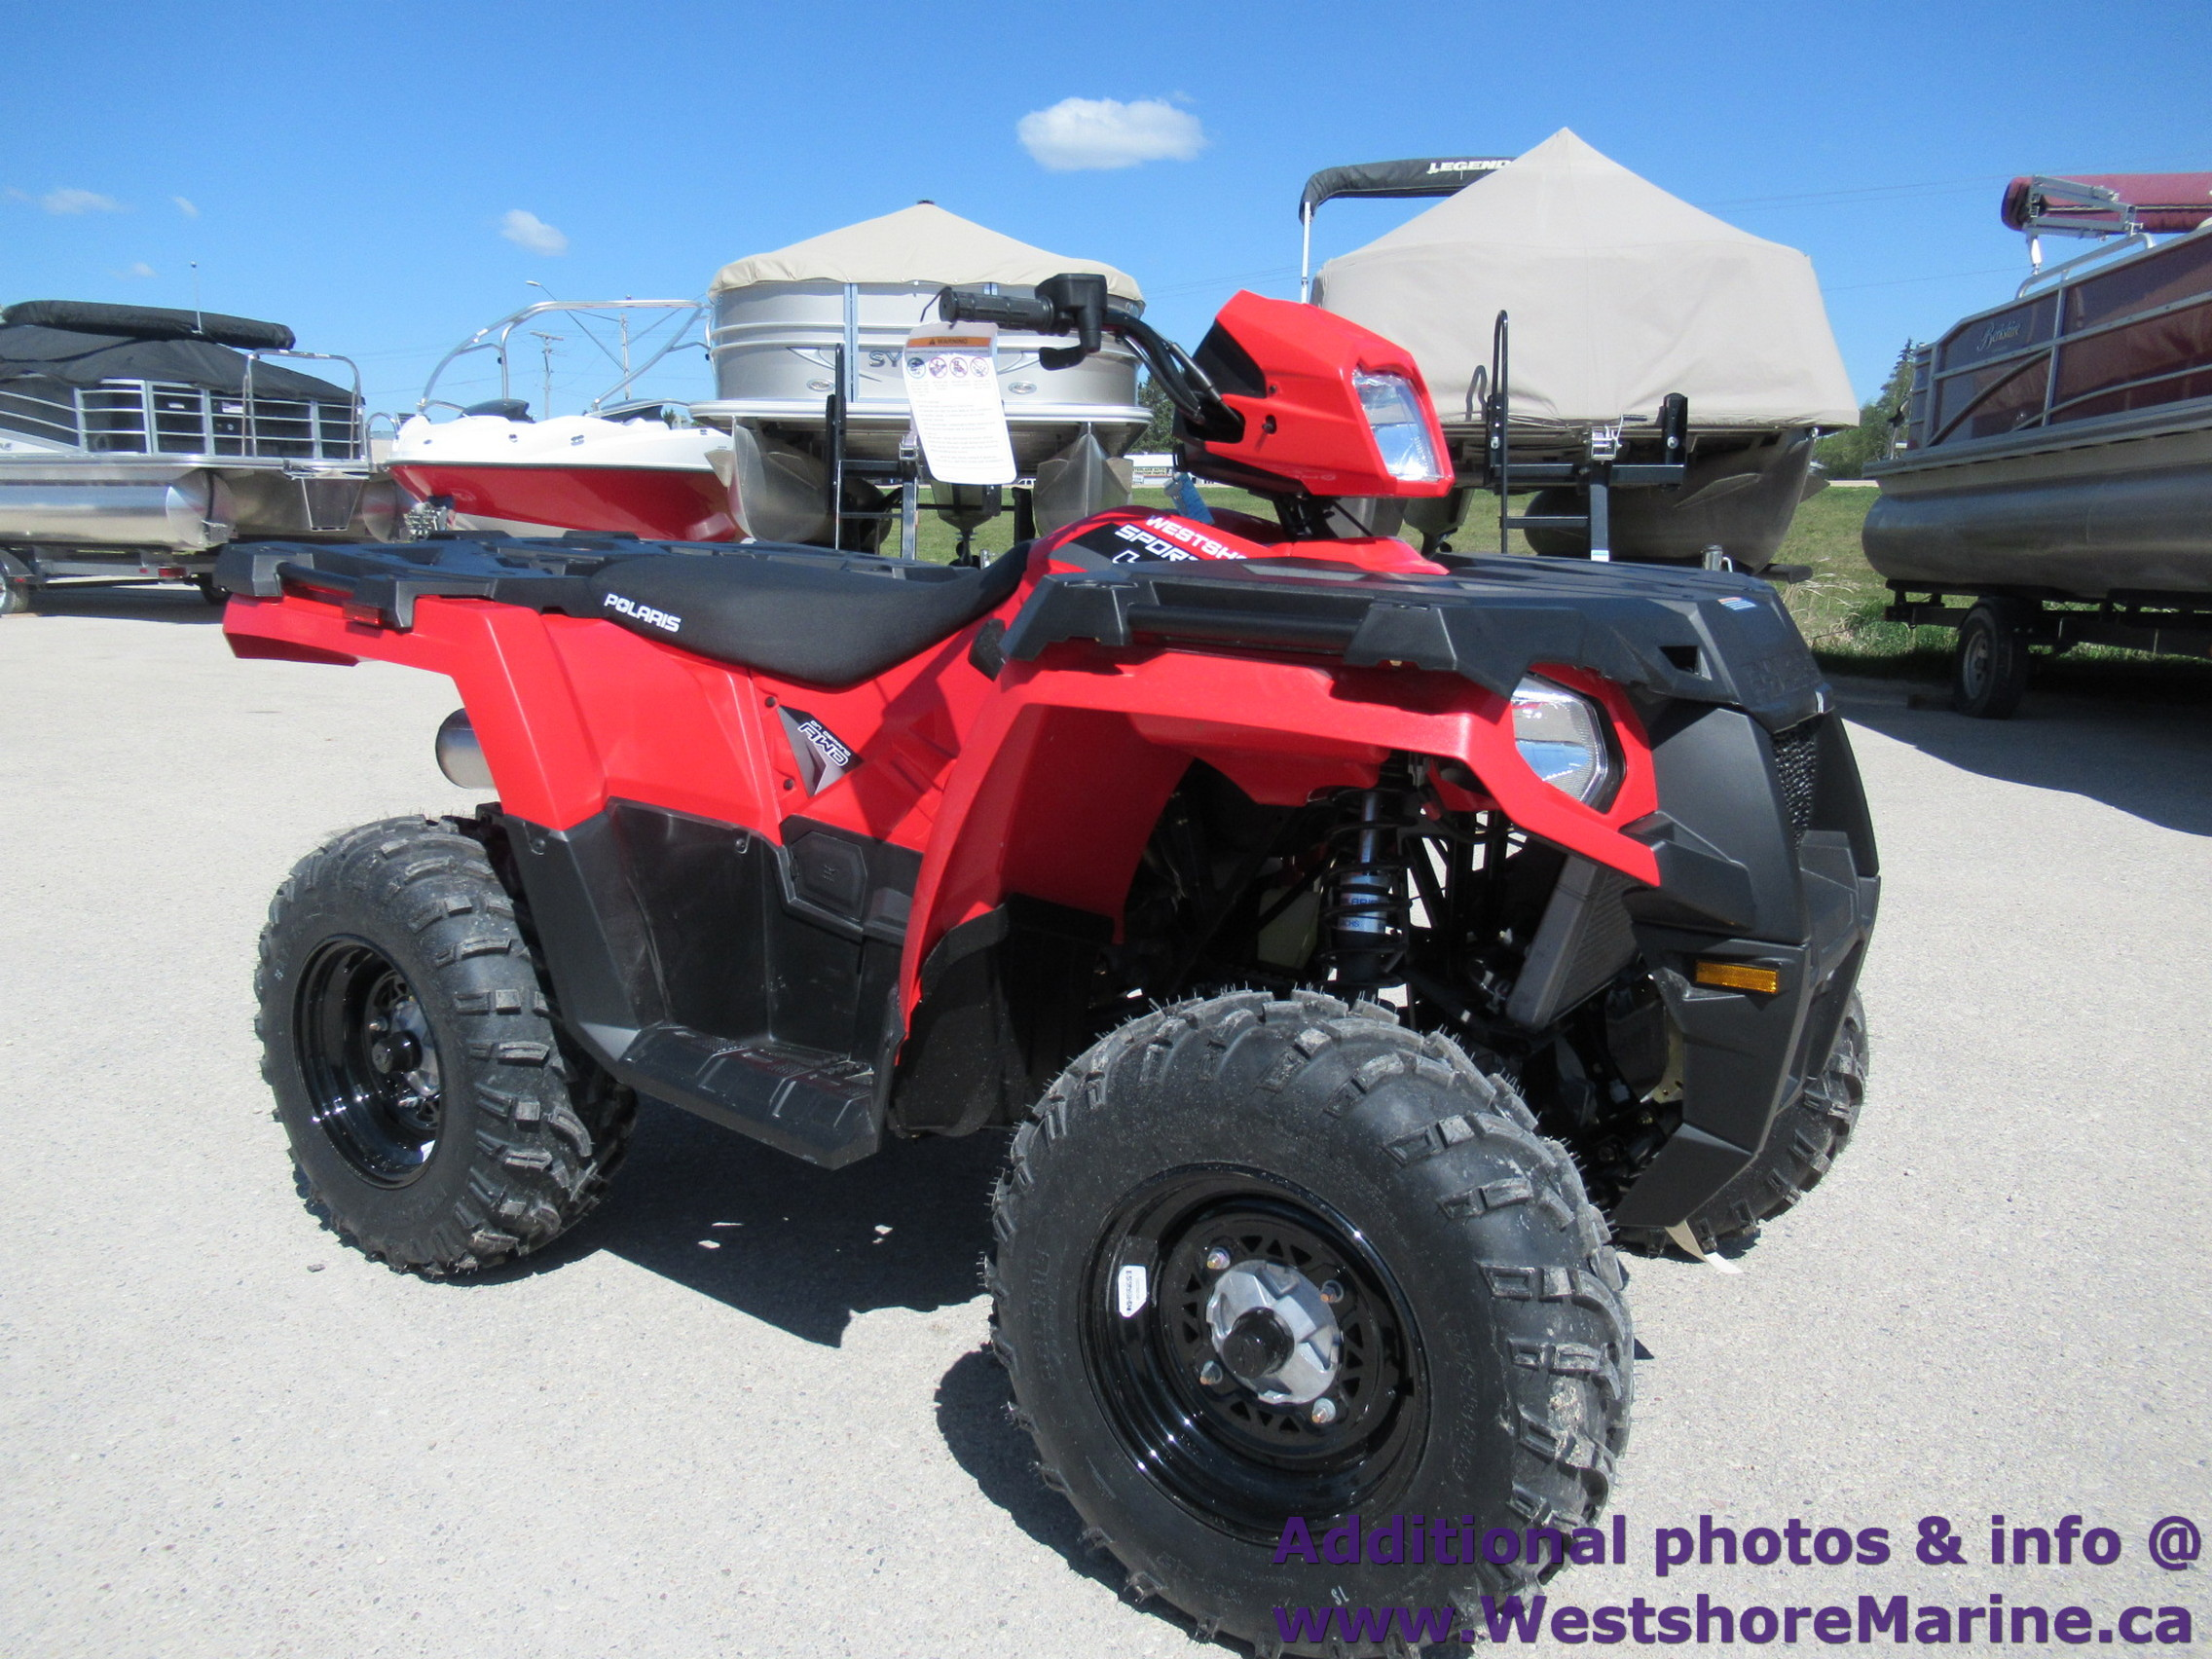 New 2019 Polaris 450 SPORTSMAN HIGH OUTPUT INDY RED & 3 YEAR WARRANTY!